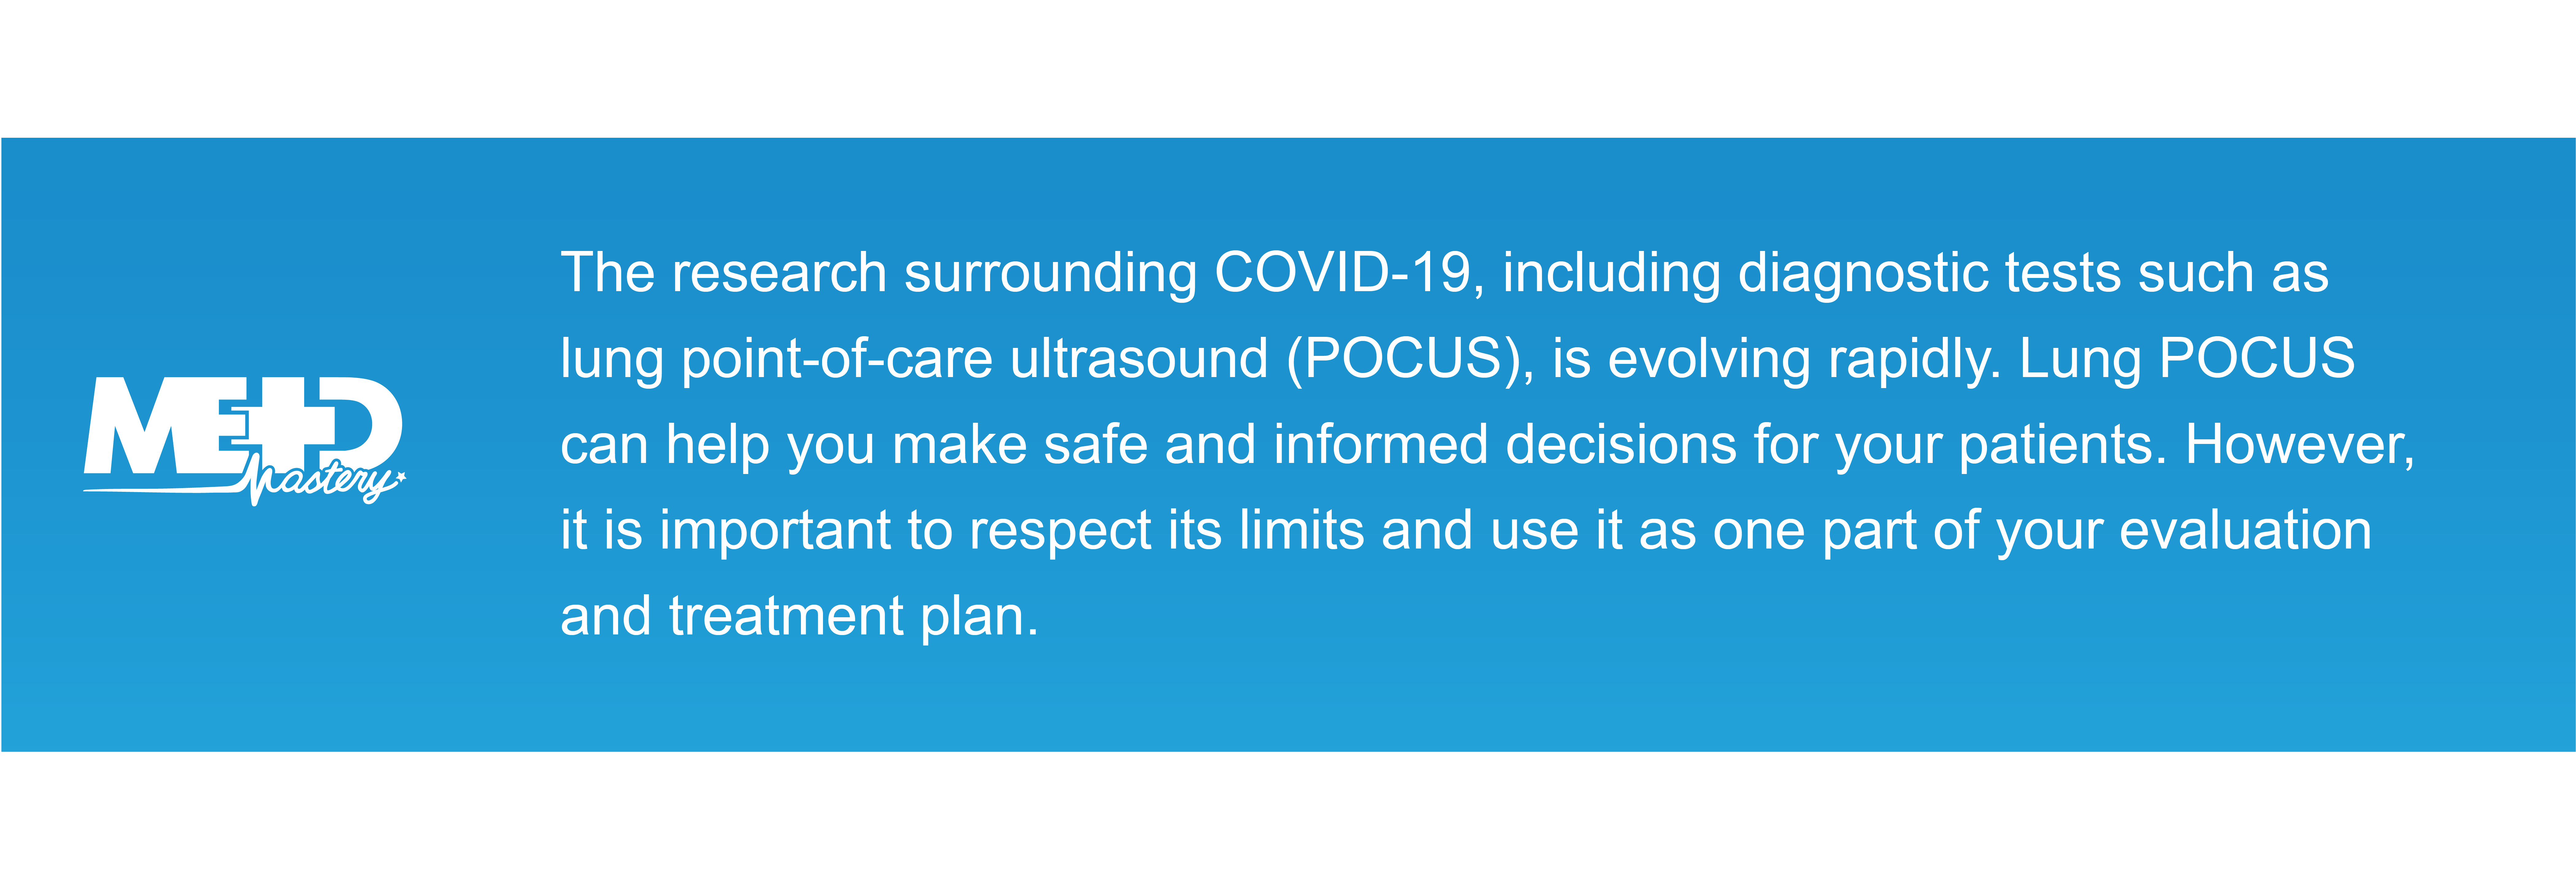 The research surrounding COVID-19, including diagnostic tests such as lung point-of-care ultrasound (POCUS), is evolving rapidly. Lung POCUS can help you make safe and informed decisions for your patients. However, it is important to respect its limits and use it as one part of your evaluation and treatment plan. Medmastery note.